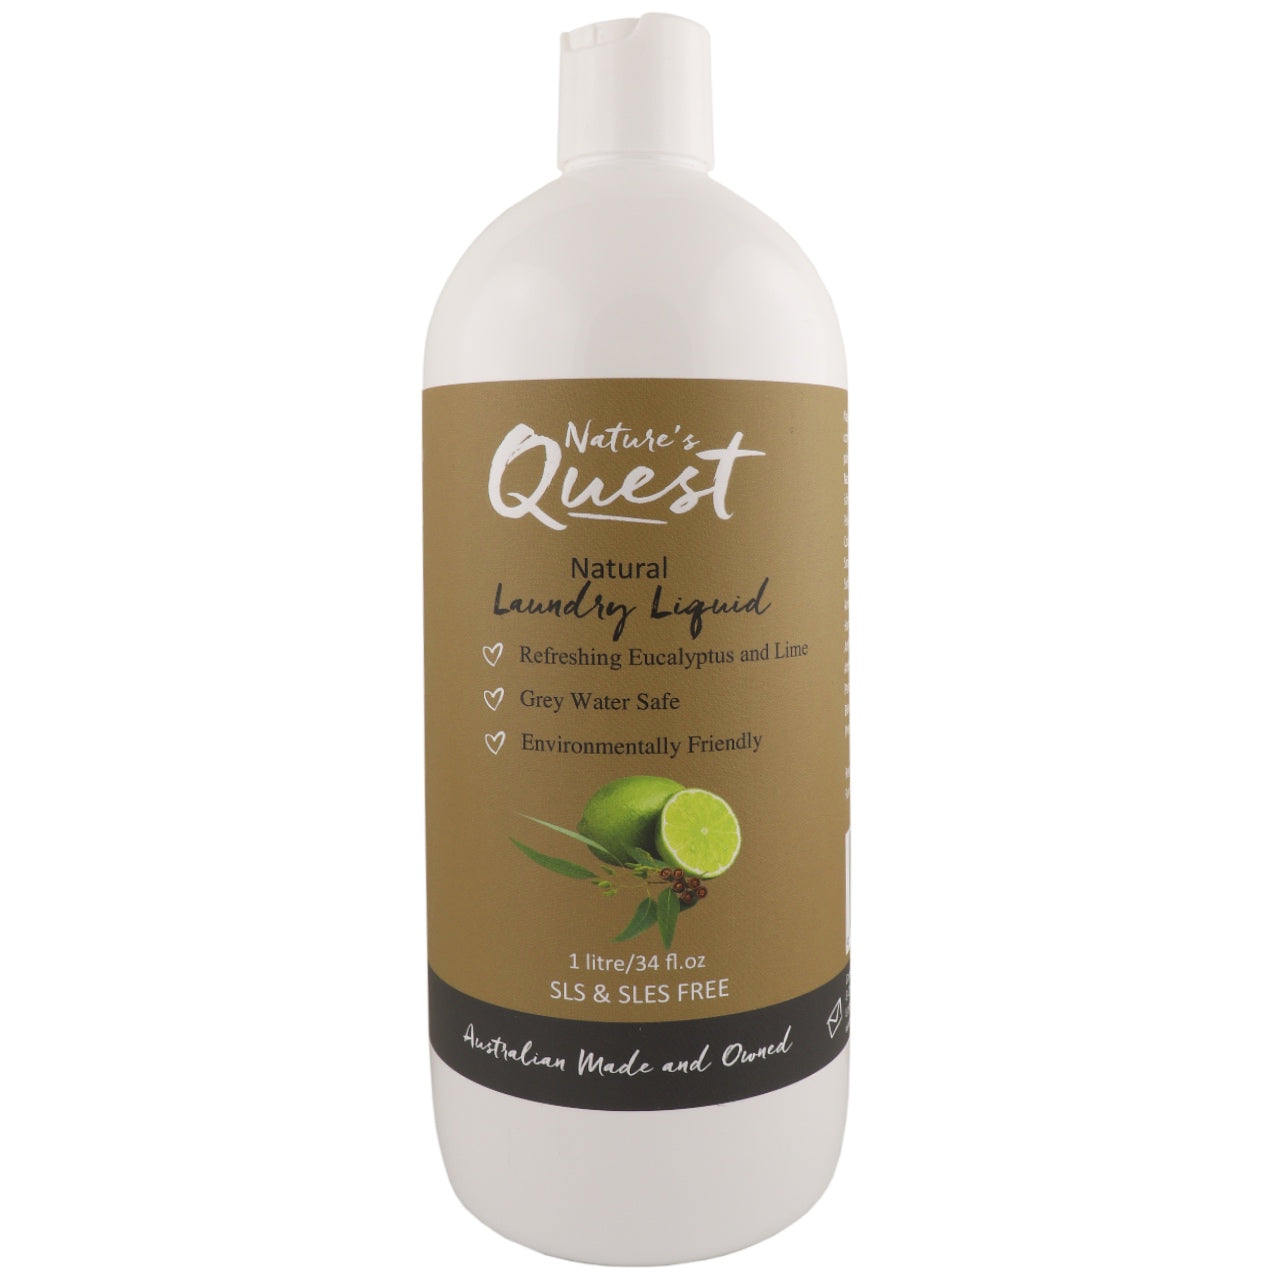 Nature's Quest Laundry Liquid